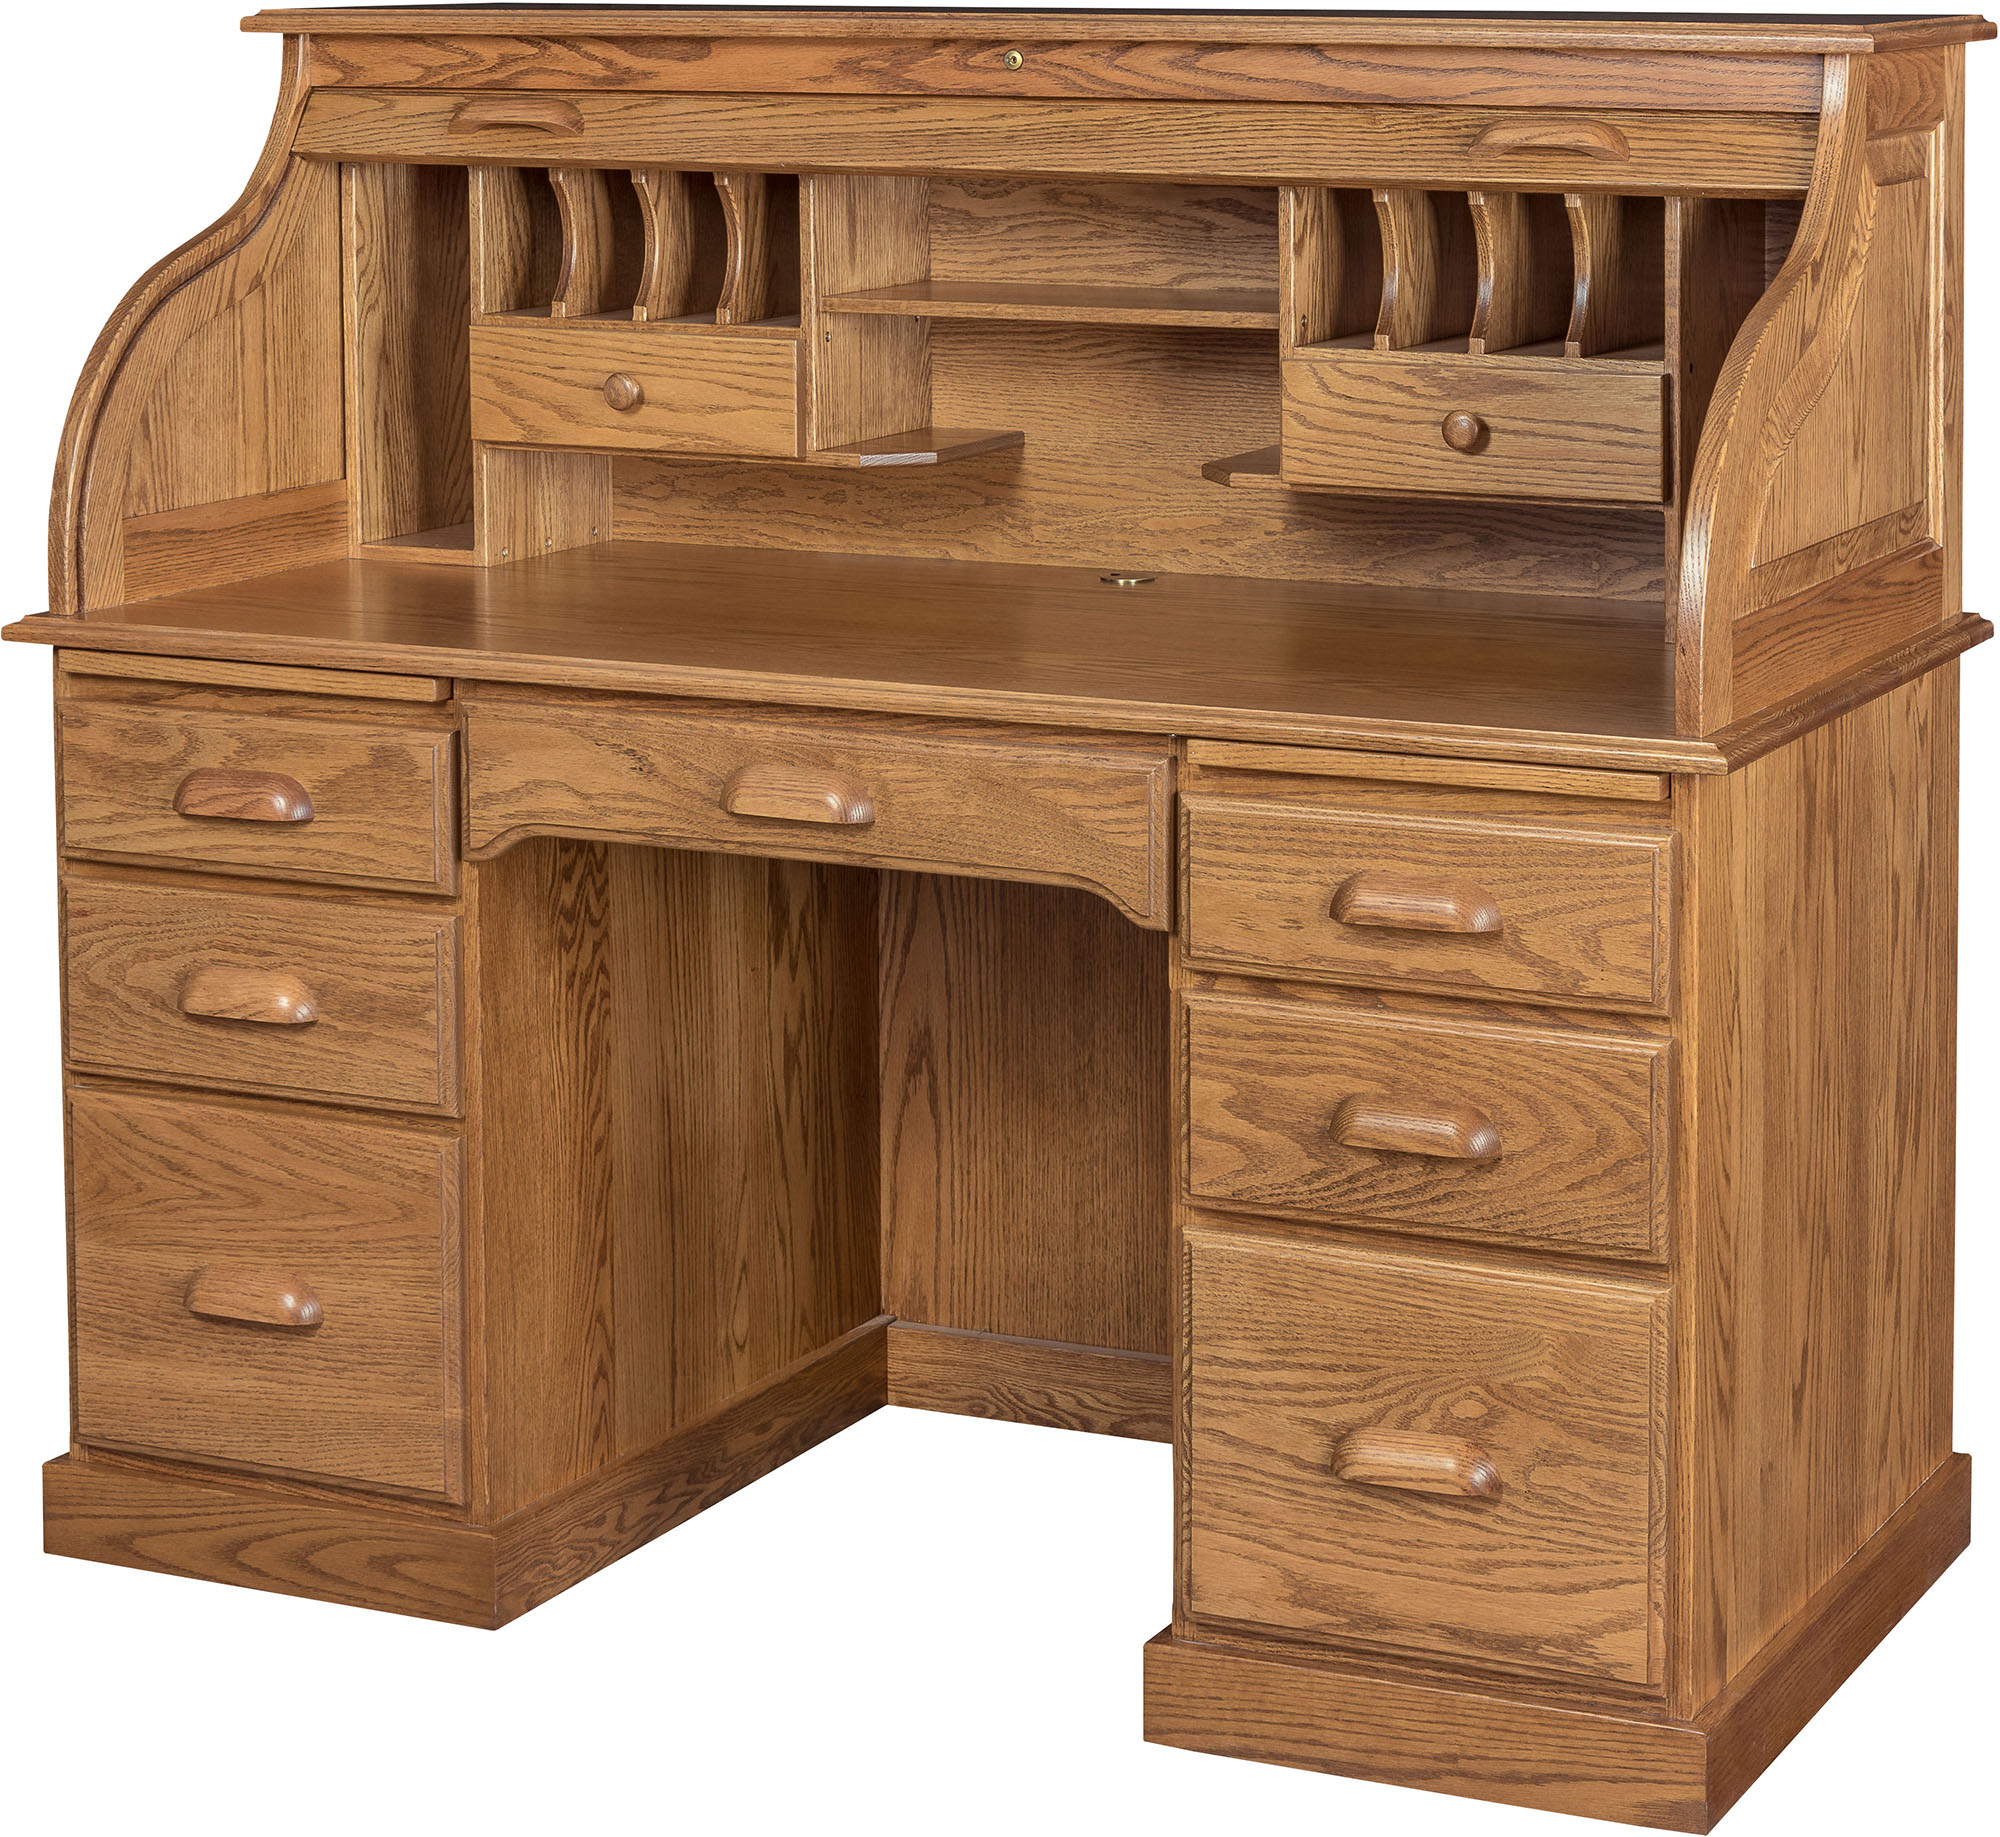 56 Inch Roll Top Desk With Hutch 56 Inch Solid Wood Roll